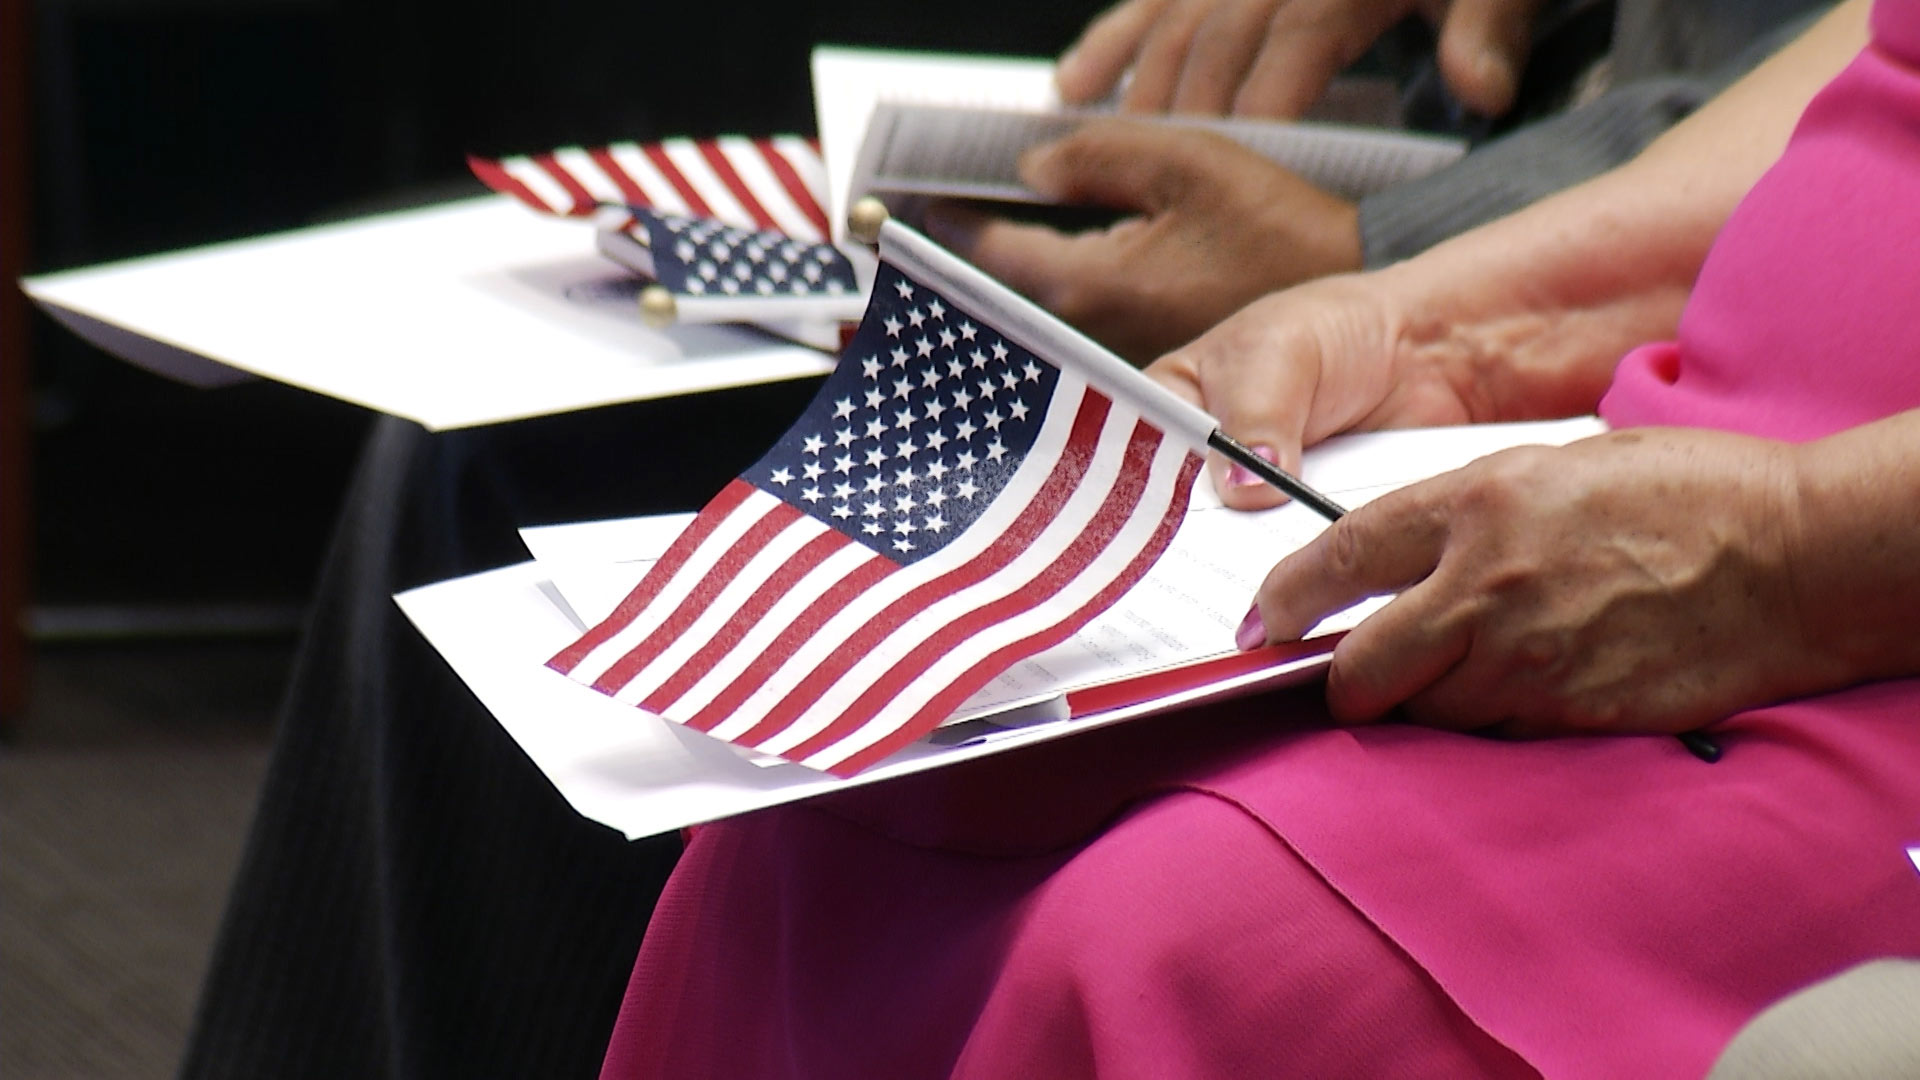 U.S. Citizenship and Immigration Services approved more than 6.6 million people to be citizens in the last decade.